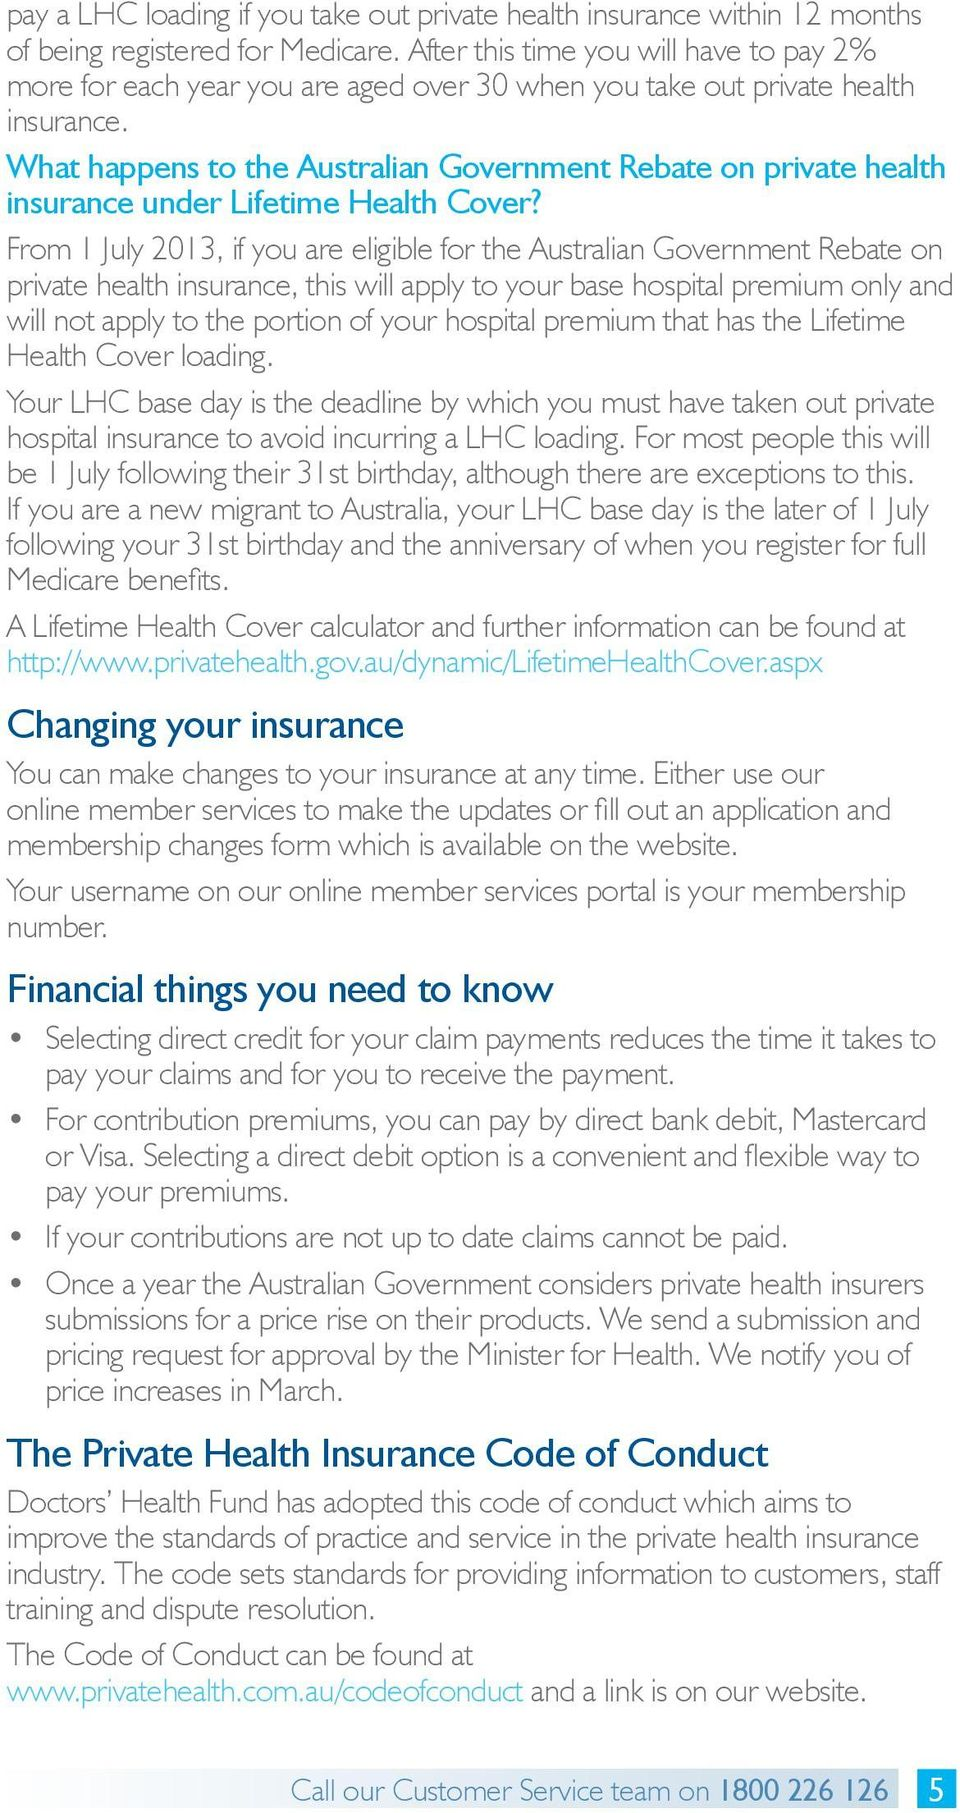 What happens to the Australian Government Rebate on private health insurance under Lifetime Health Cover?